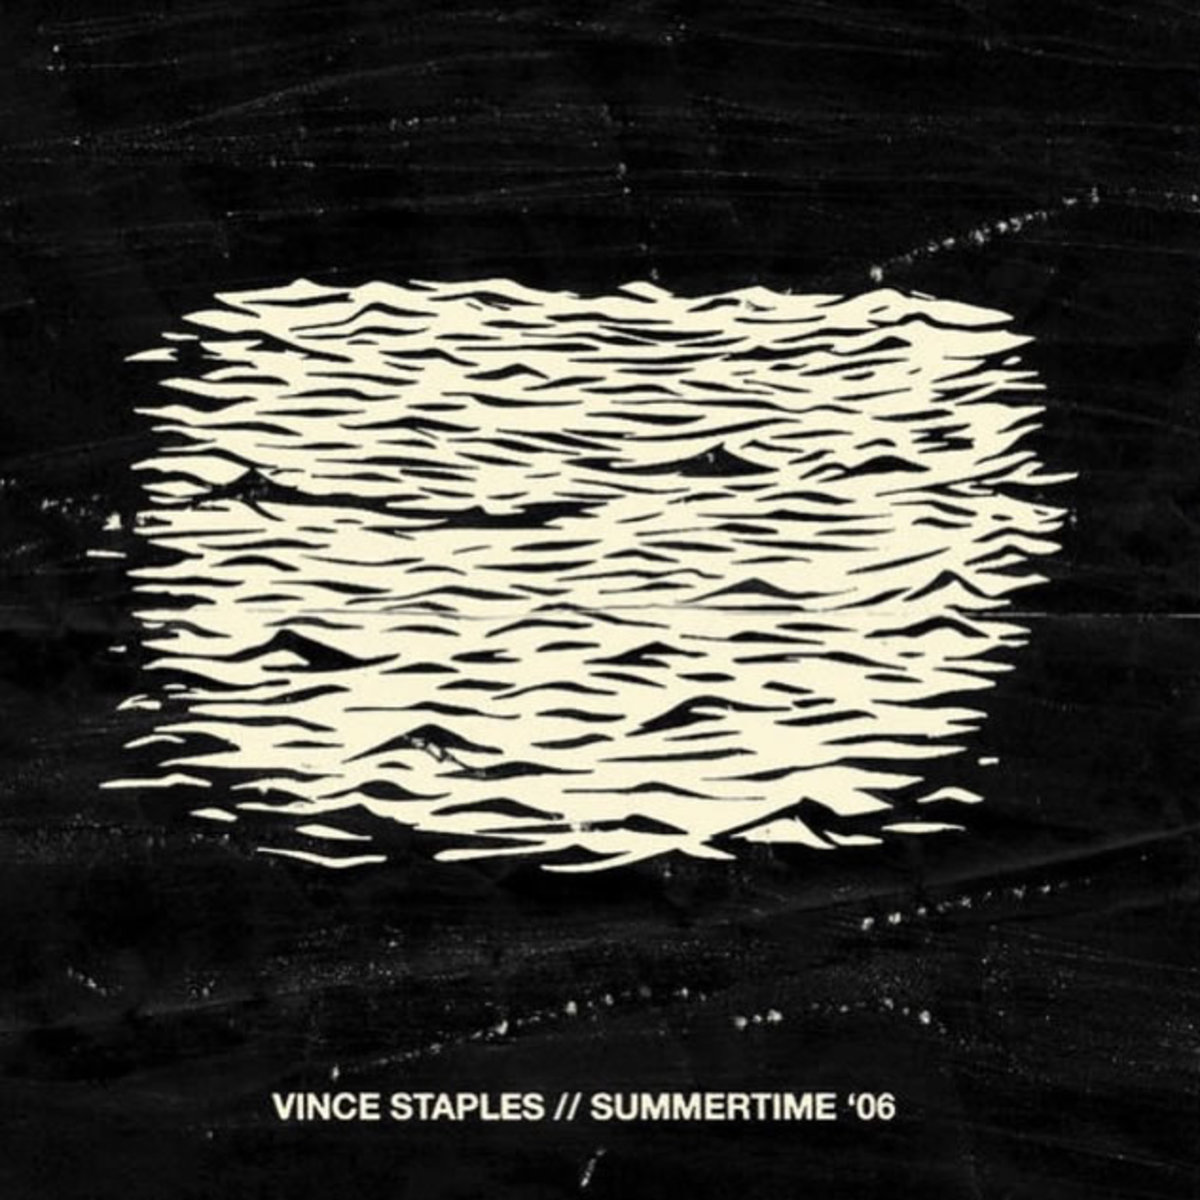 In Vince Staples' Summertime '06, the living is anything but easy